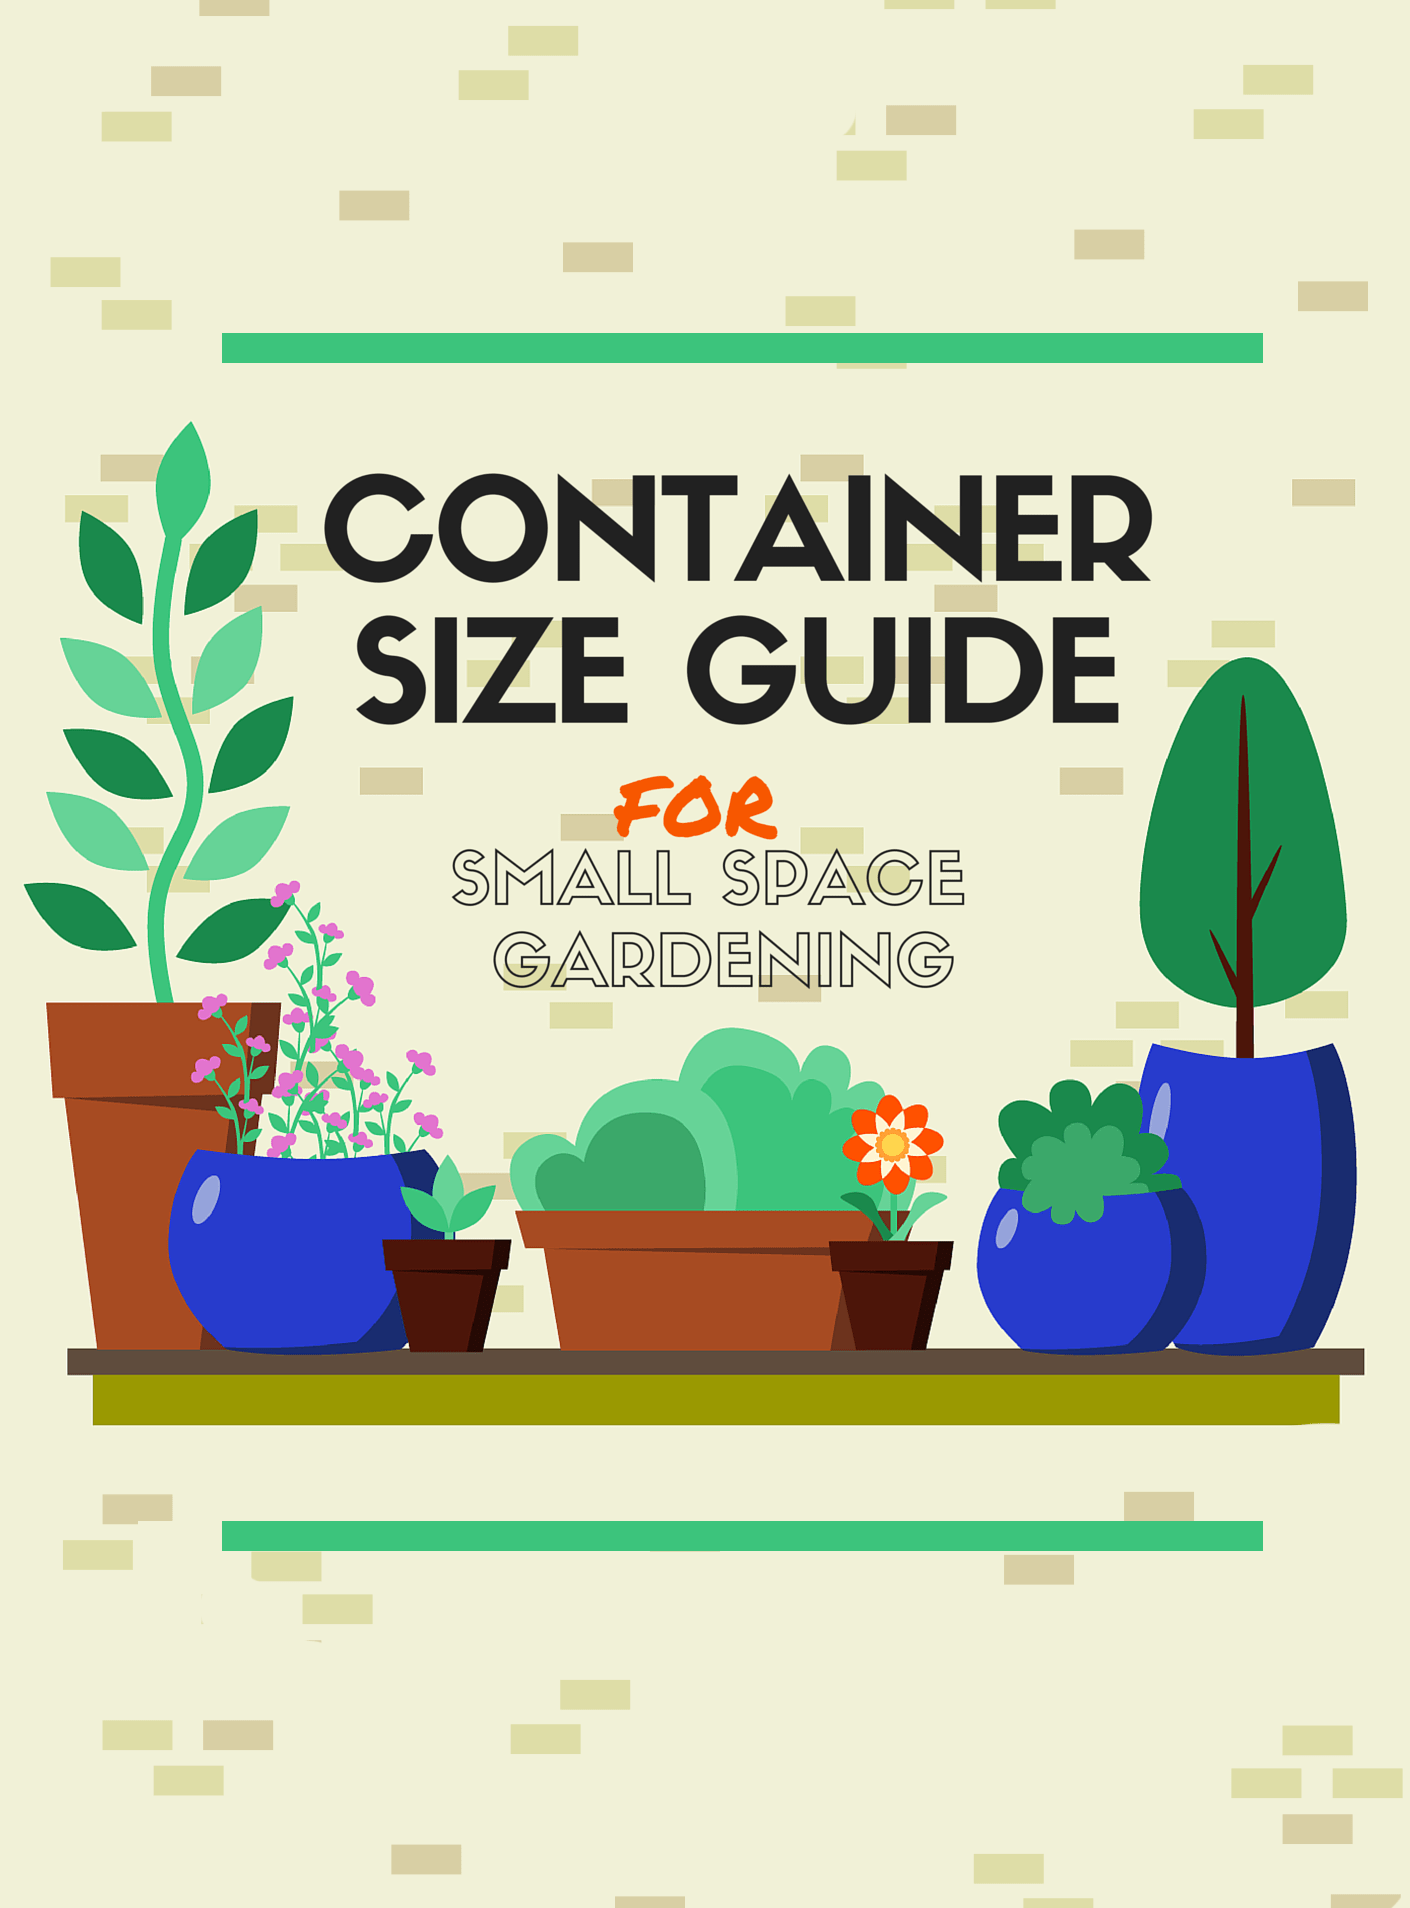 Container pot size guide for herbs veggies fruit flowers urban garden